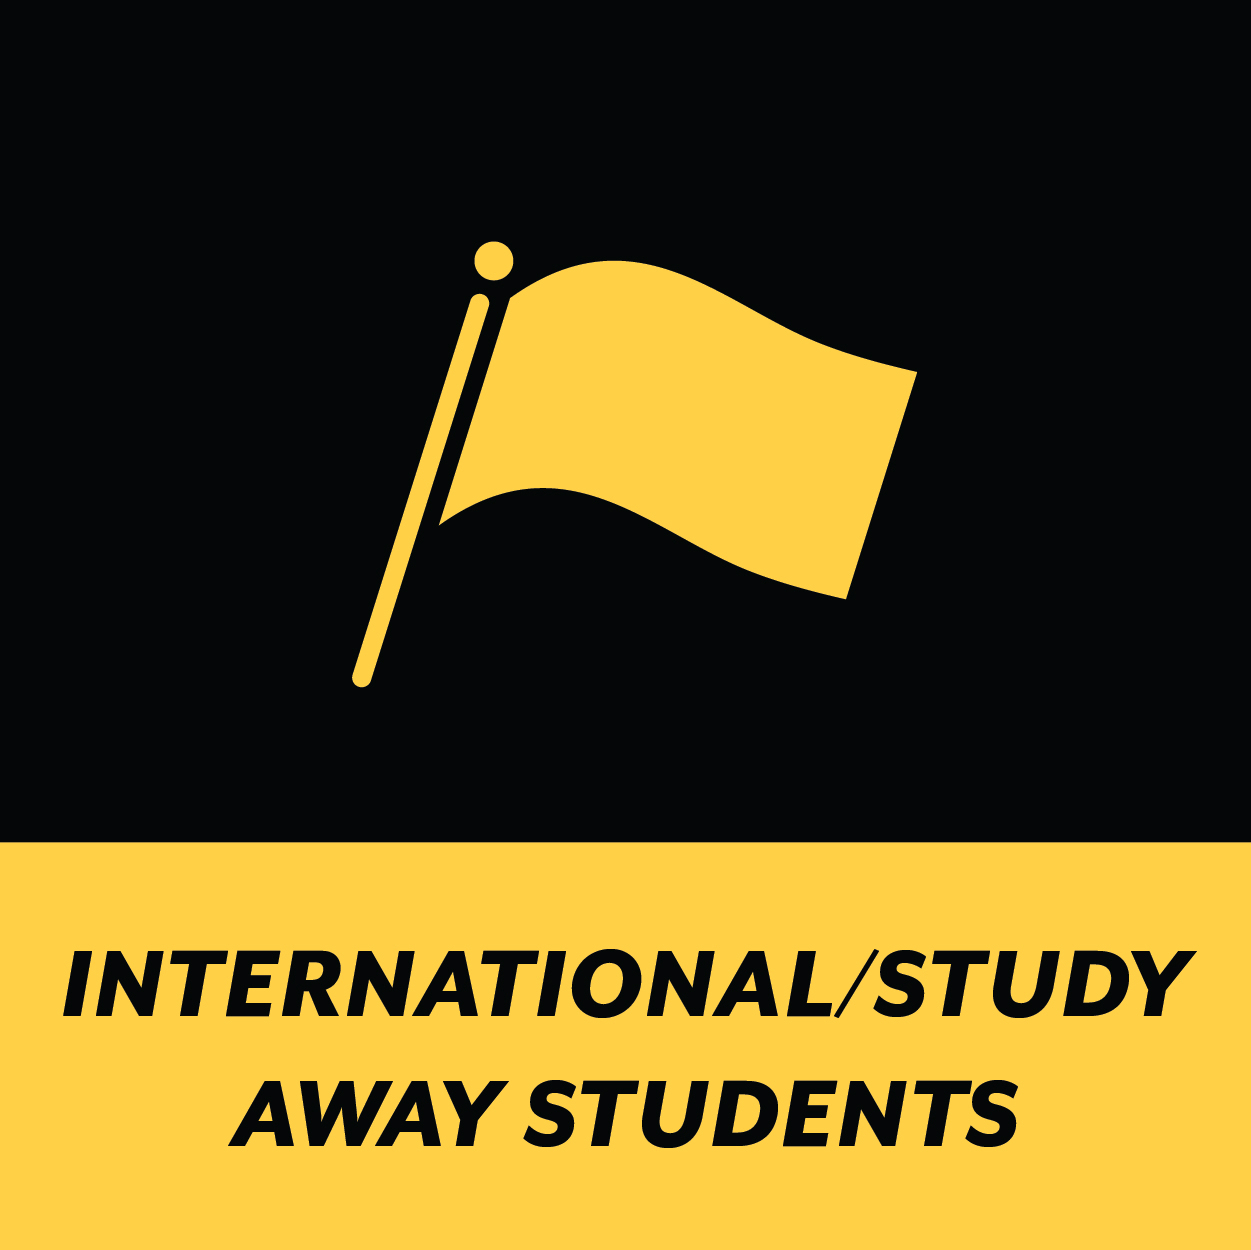 International/Study Away Students